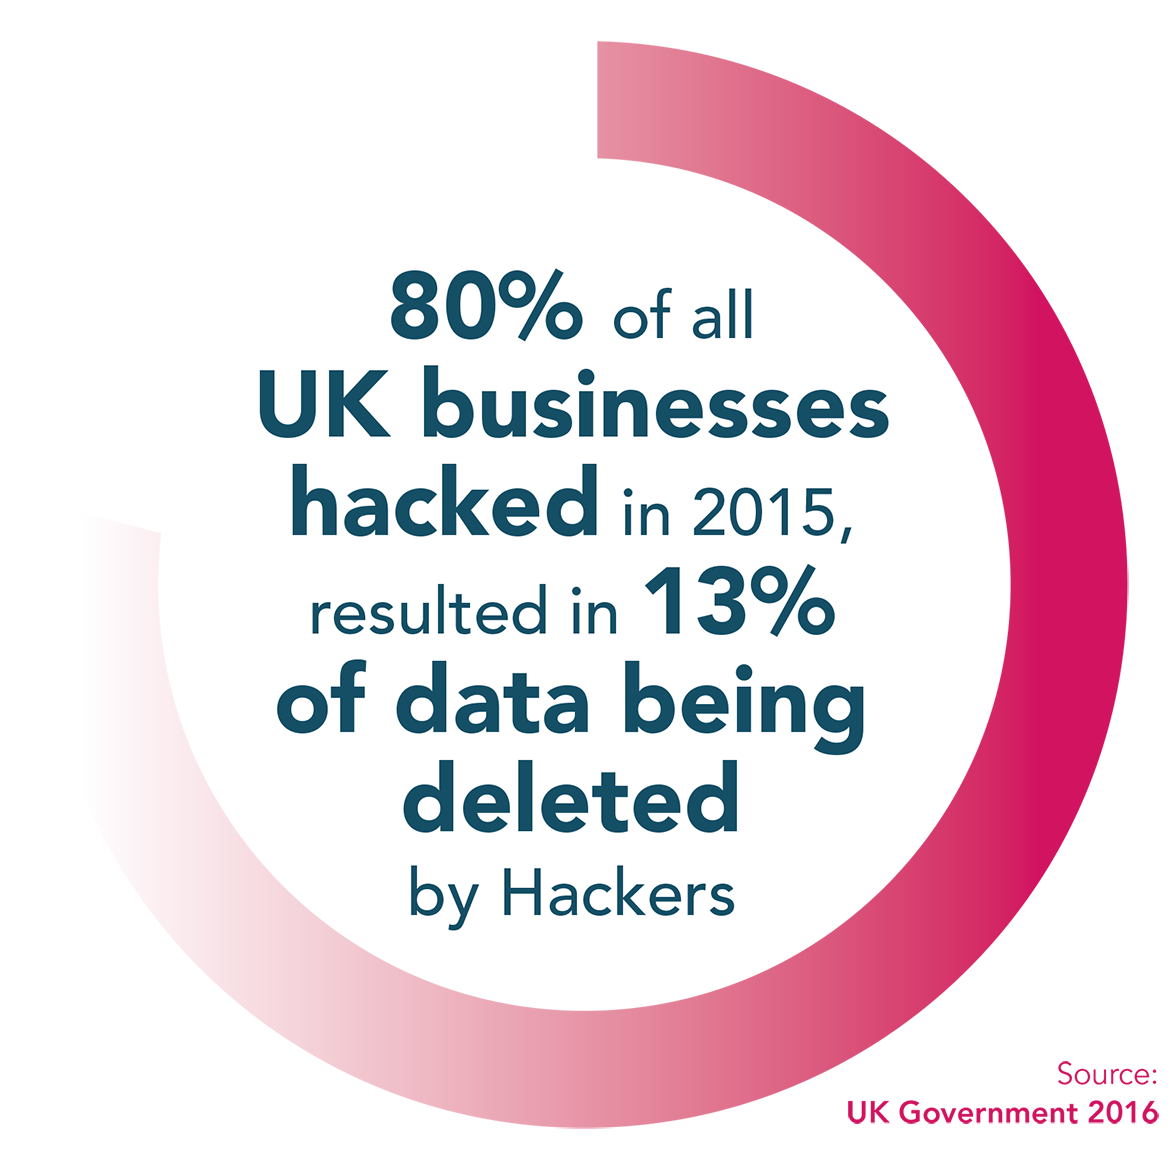 80% of all businesses hacked in 2015 resulted in 13% of data being deleted